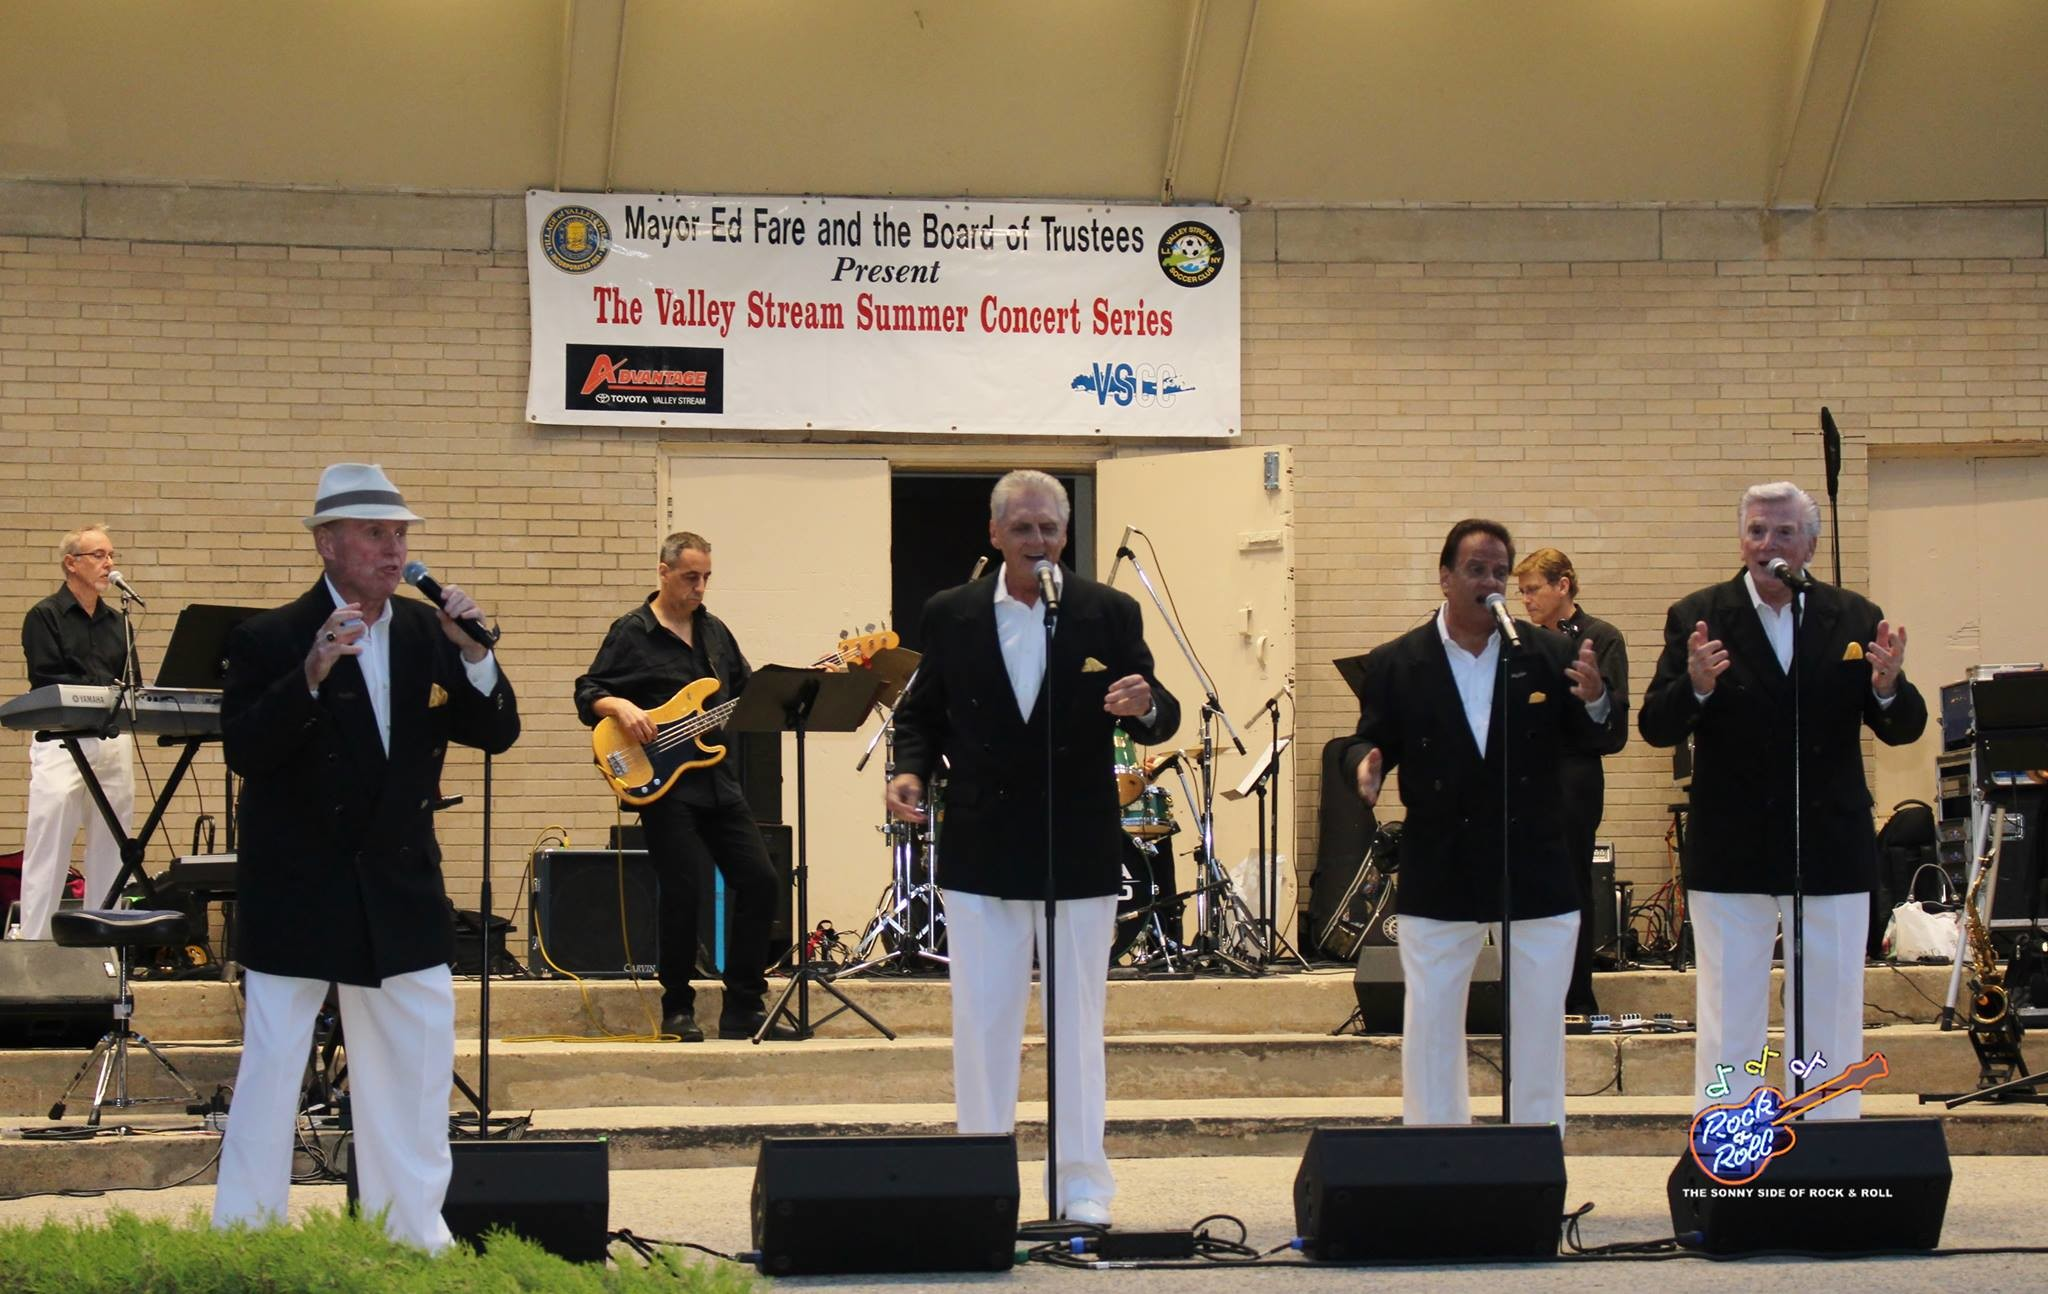 John Kuse & the Excellents have performed at the Village Green in previous years.